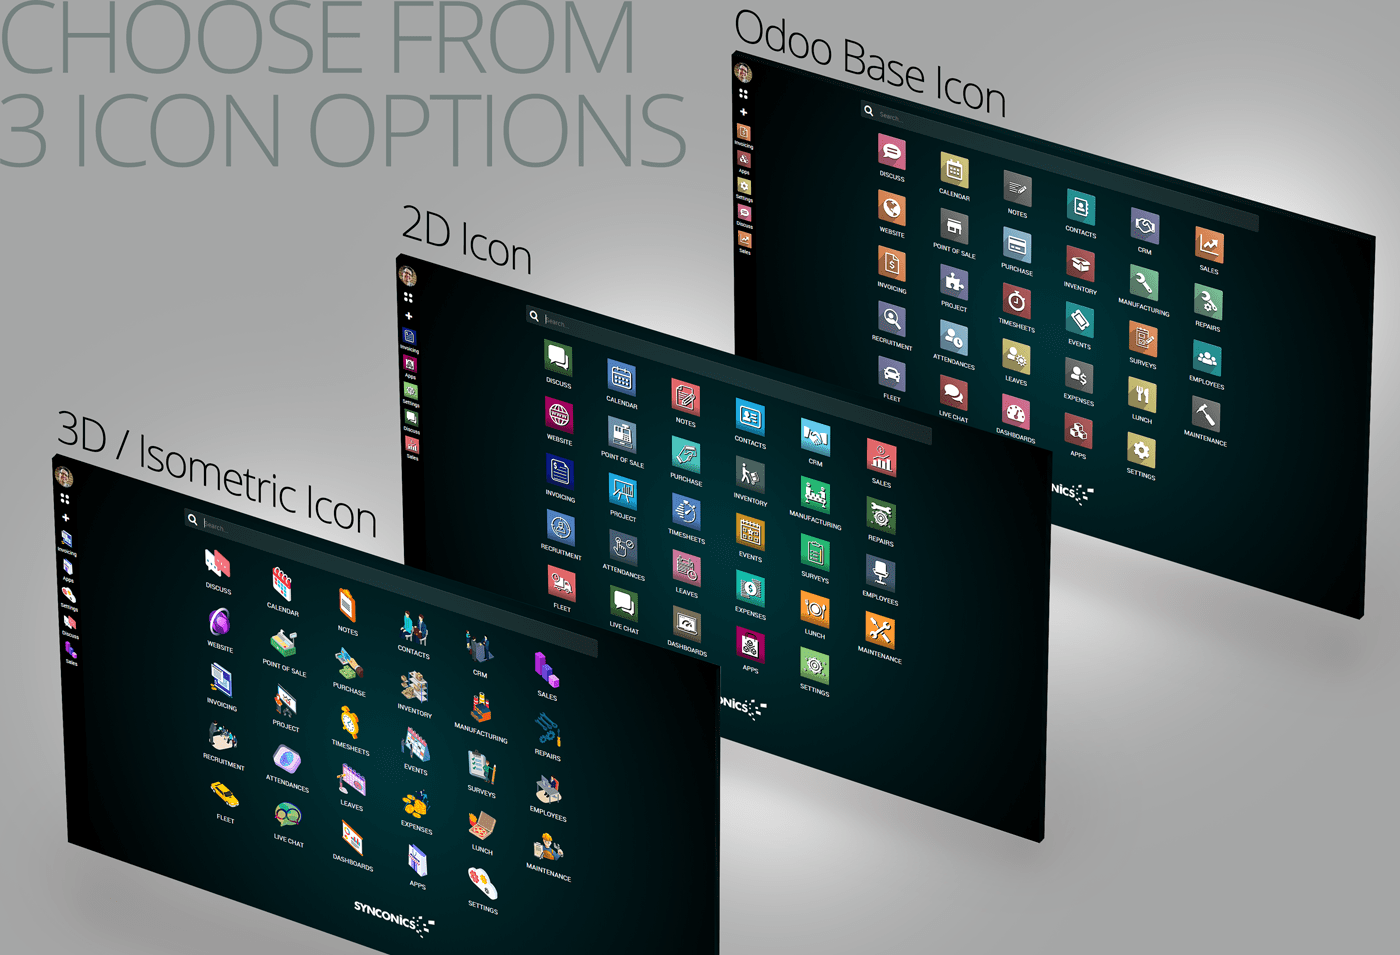 010_synconics_odoo_allure_backend_theme_icons-min